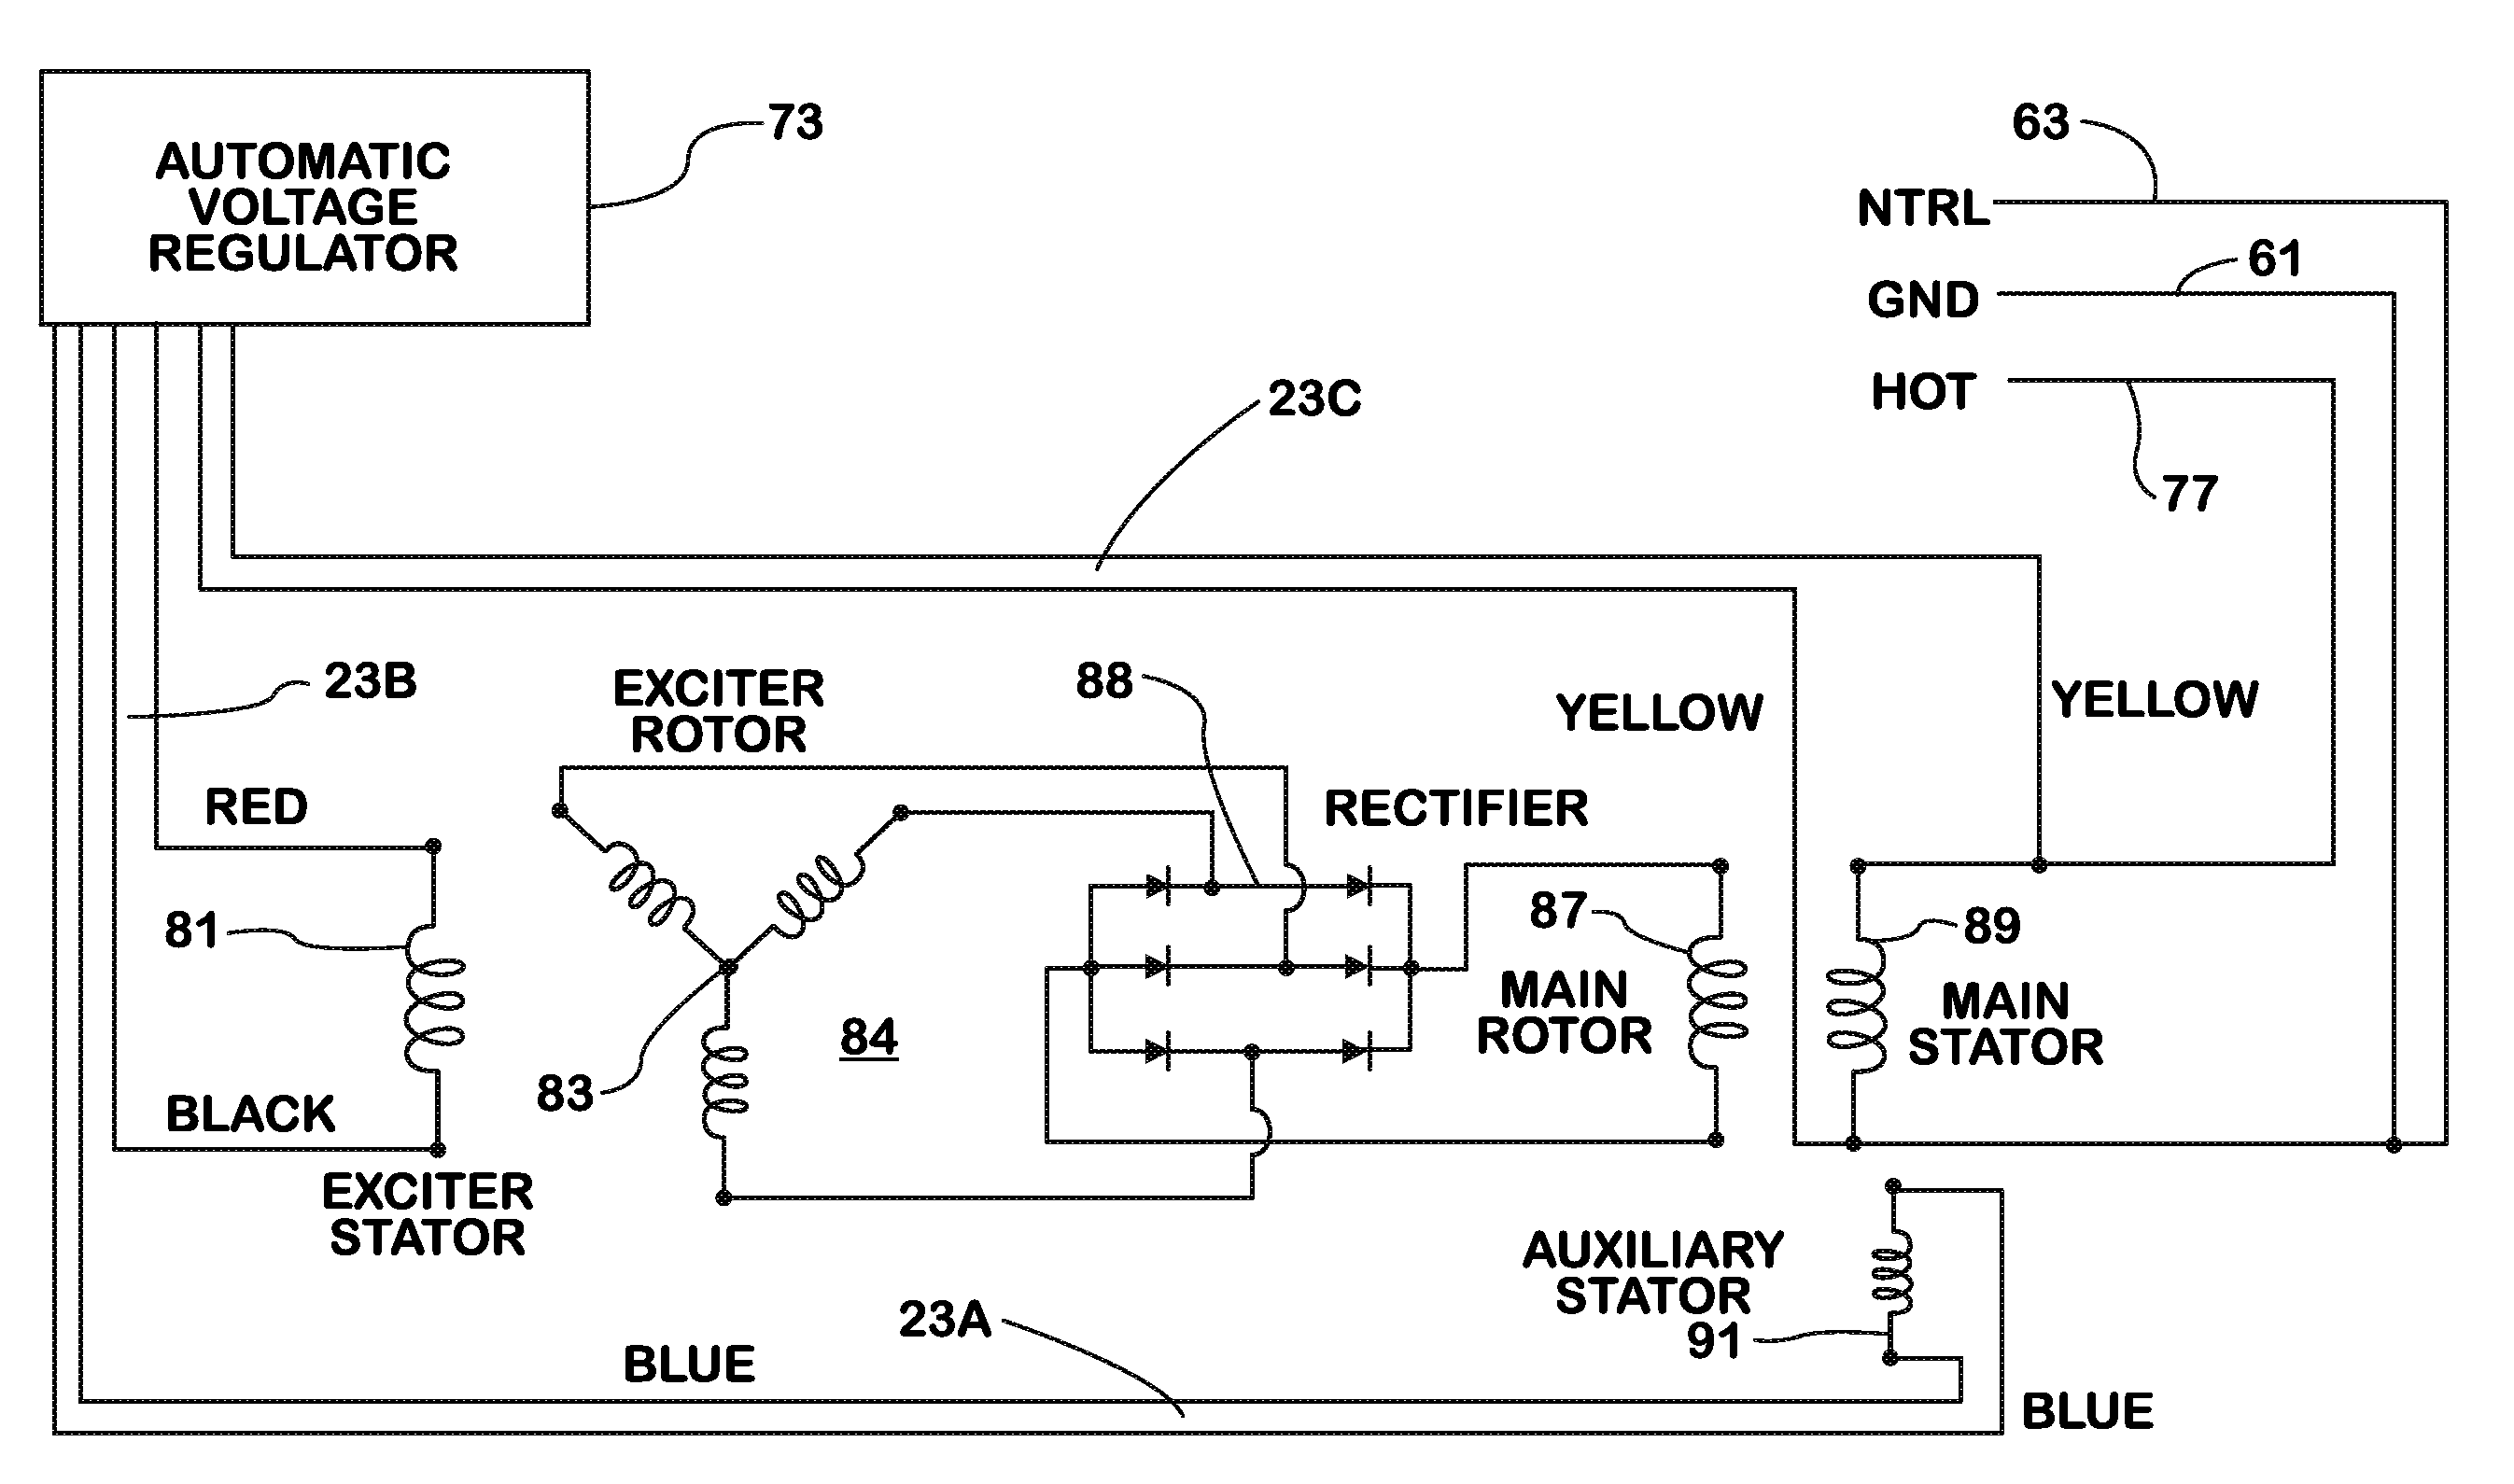 US08283942 20121009 D00000 patent us8283942 auxiliary power unit diagnostic tool google generator exciter diagram at n-0.co